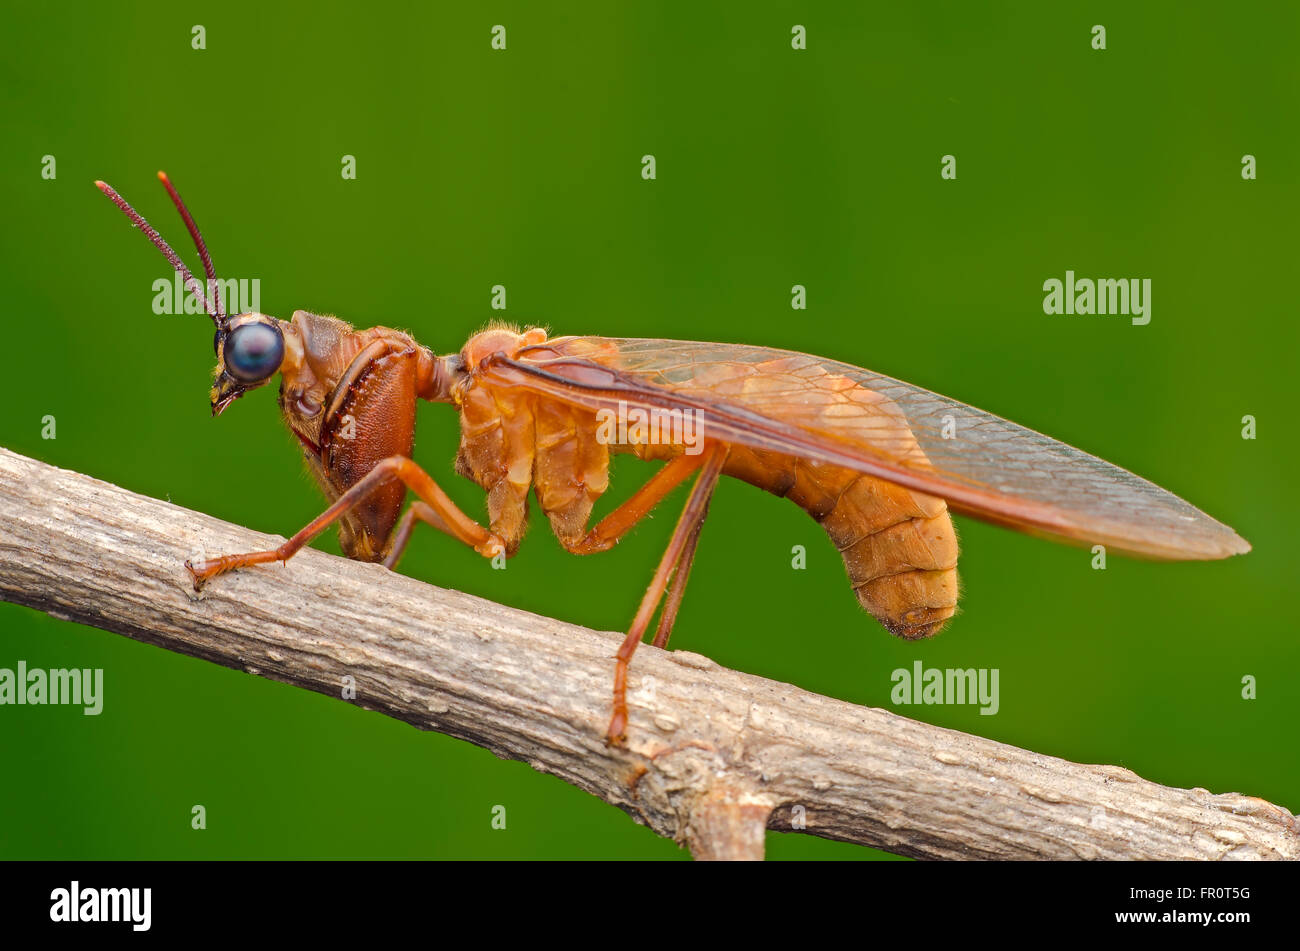 Mantis fliegen. Mantidflies Stockbild